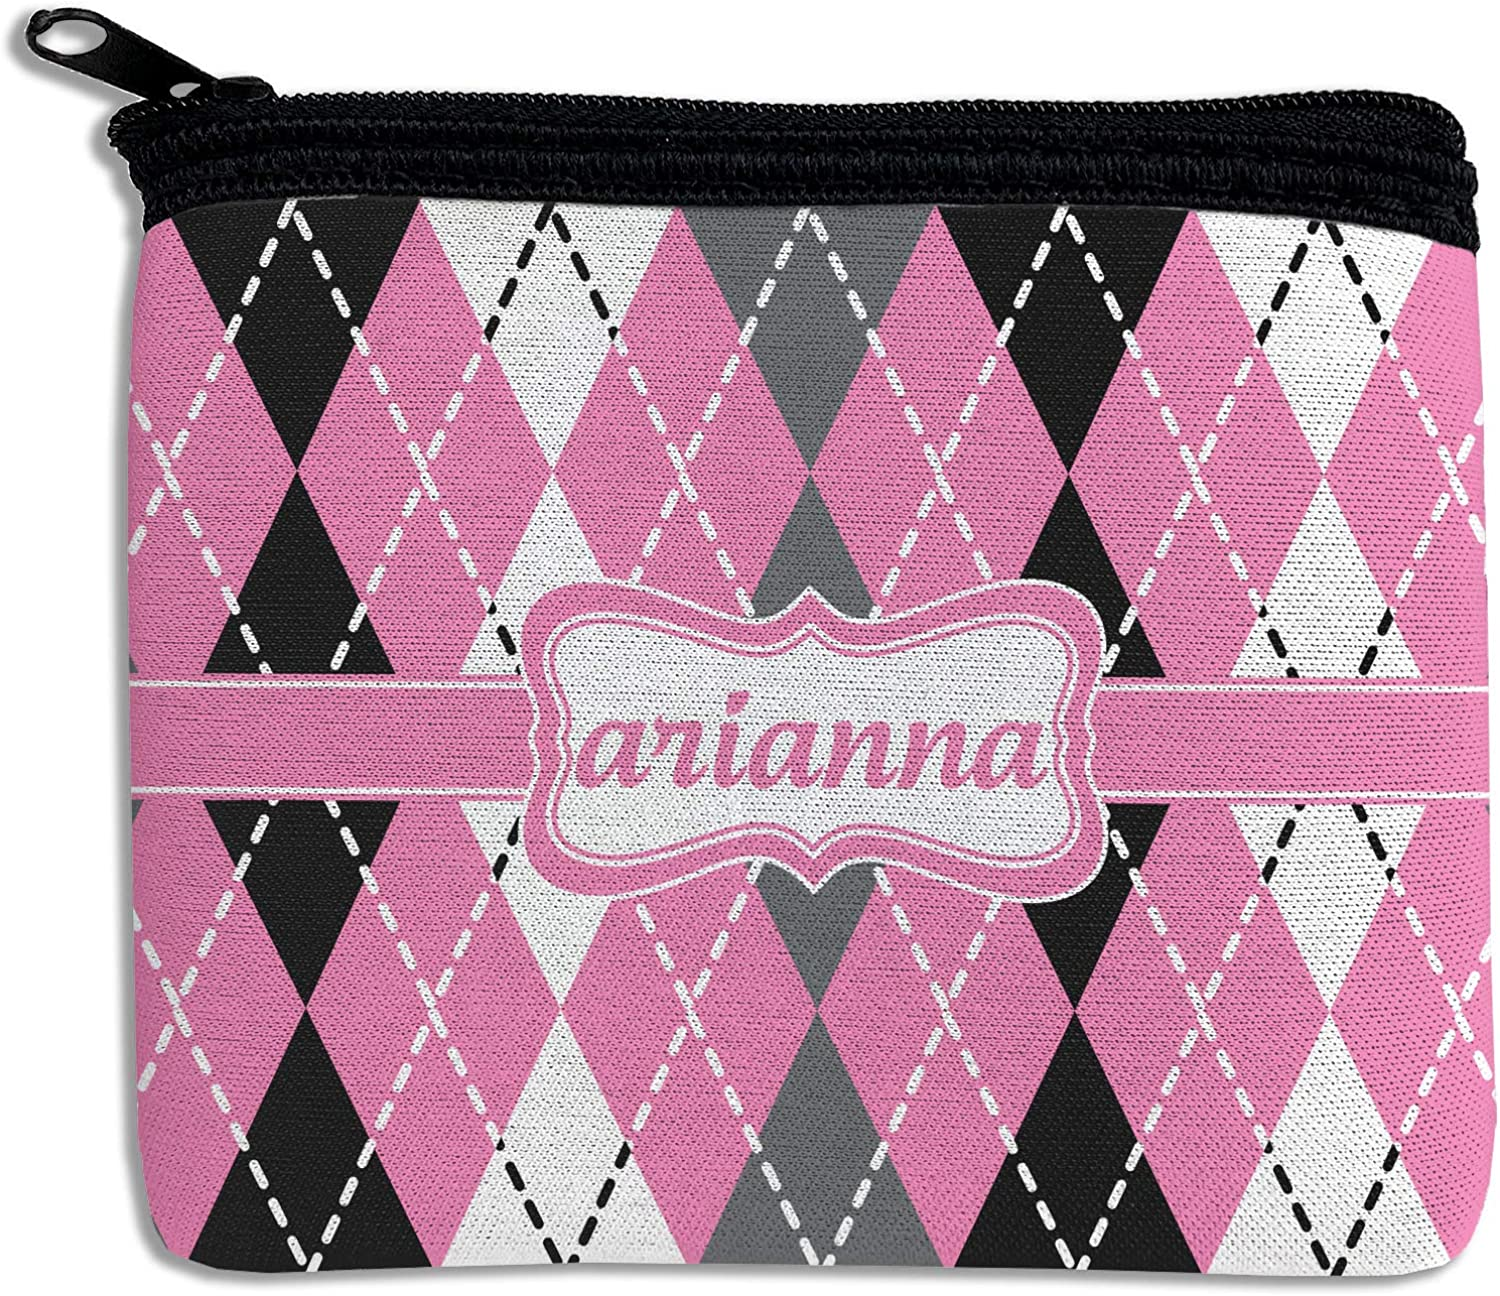 Argyle Outlet sale feature Rectangular Coin Personalized Purse Recommended